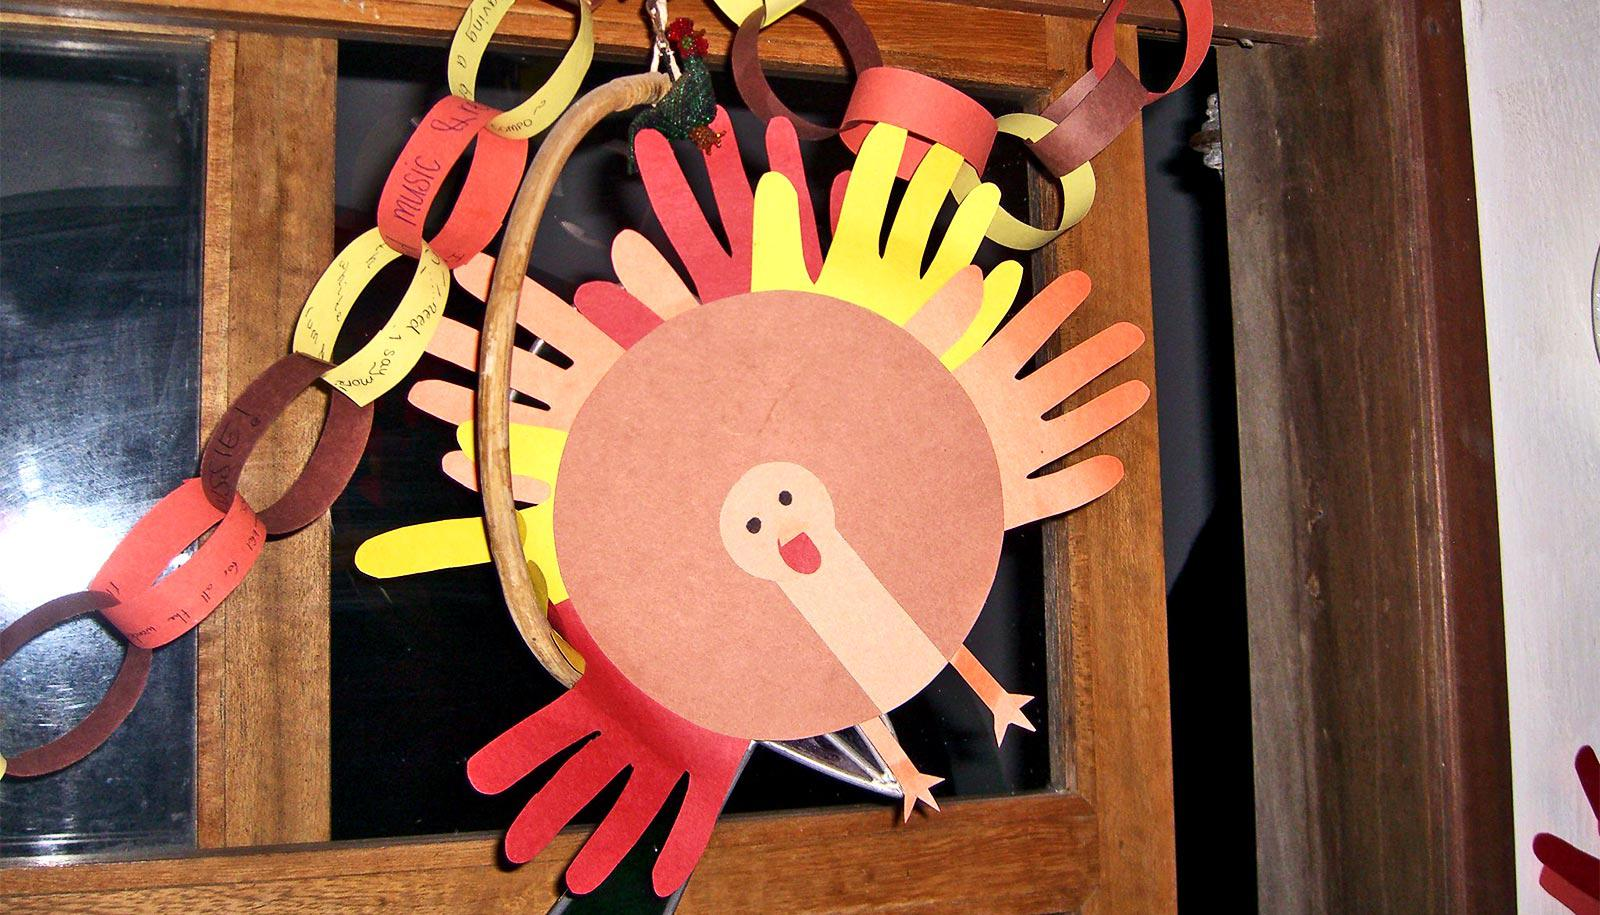 A paper turkey made with outlines of hands cut from colorful paper hangs in a doorway